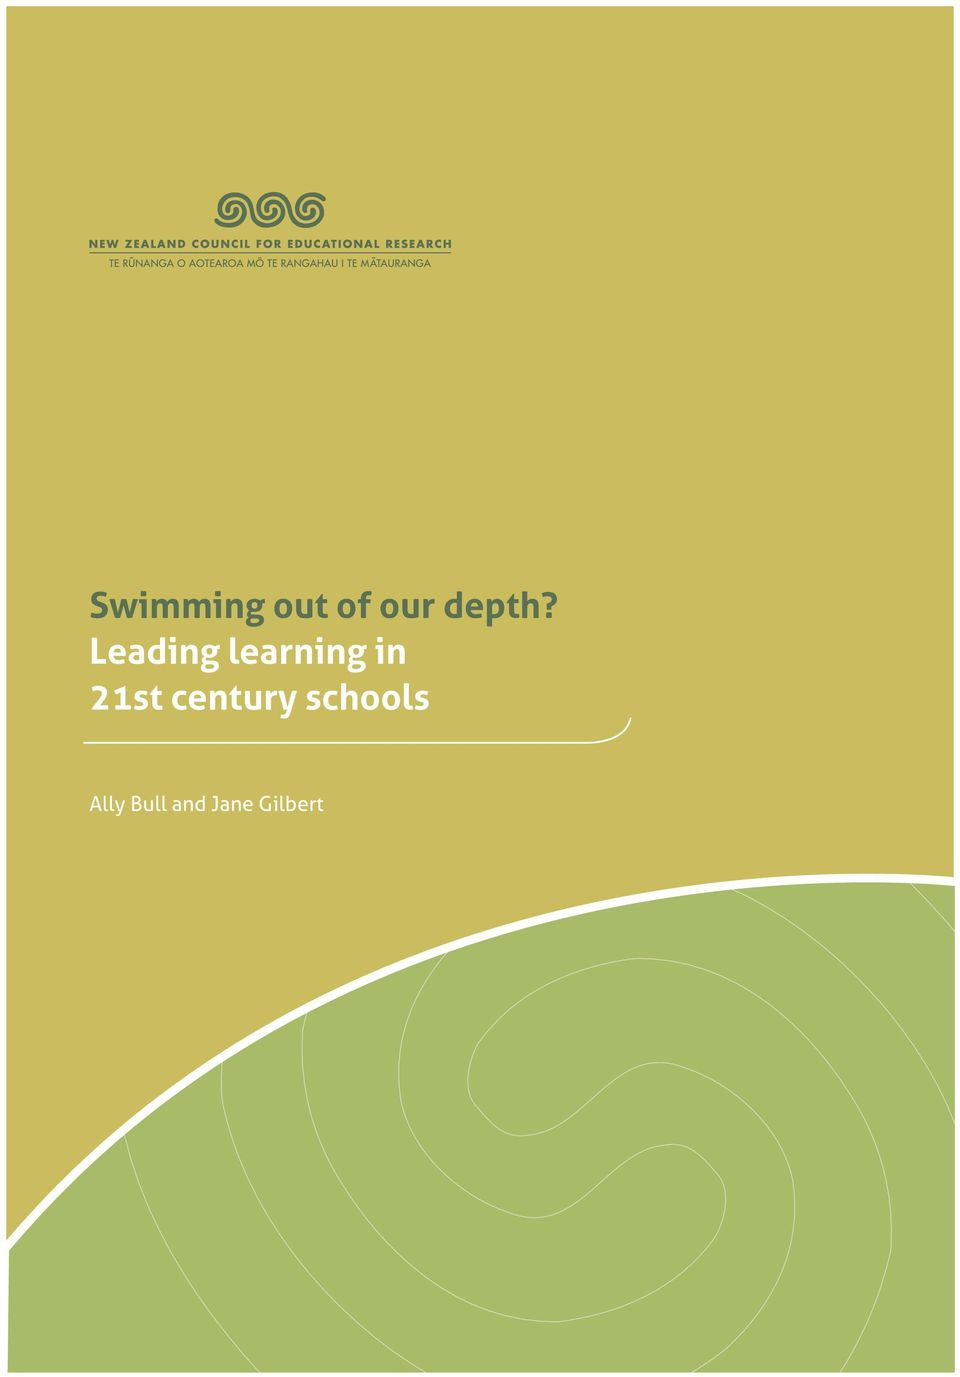 Leading learning in